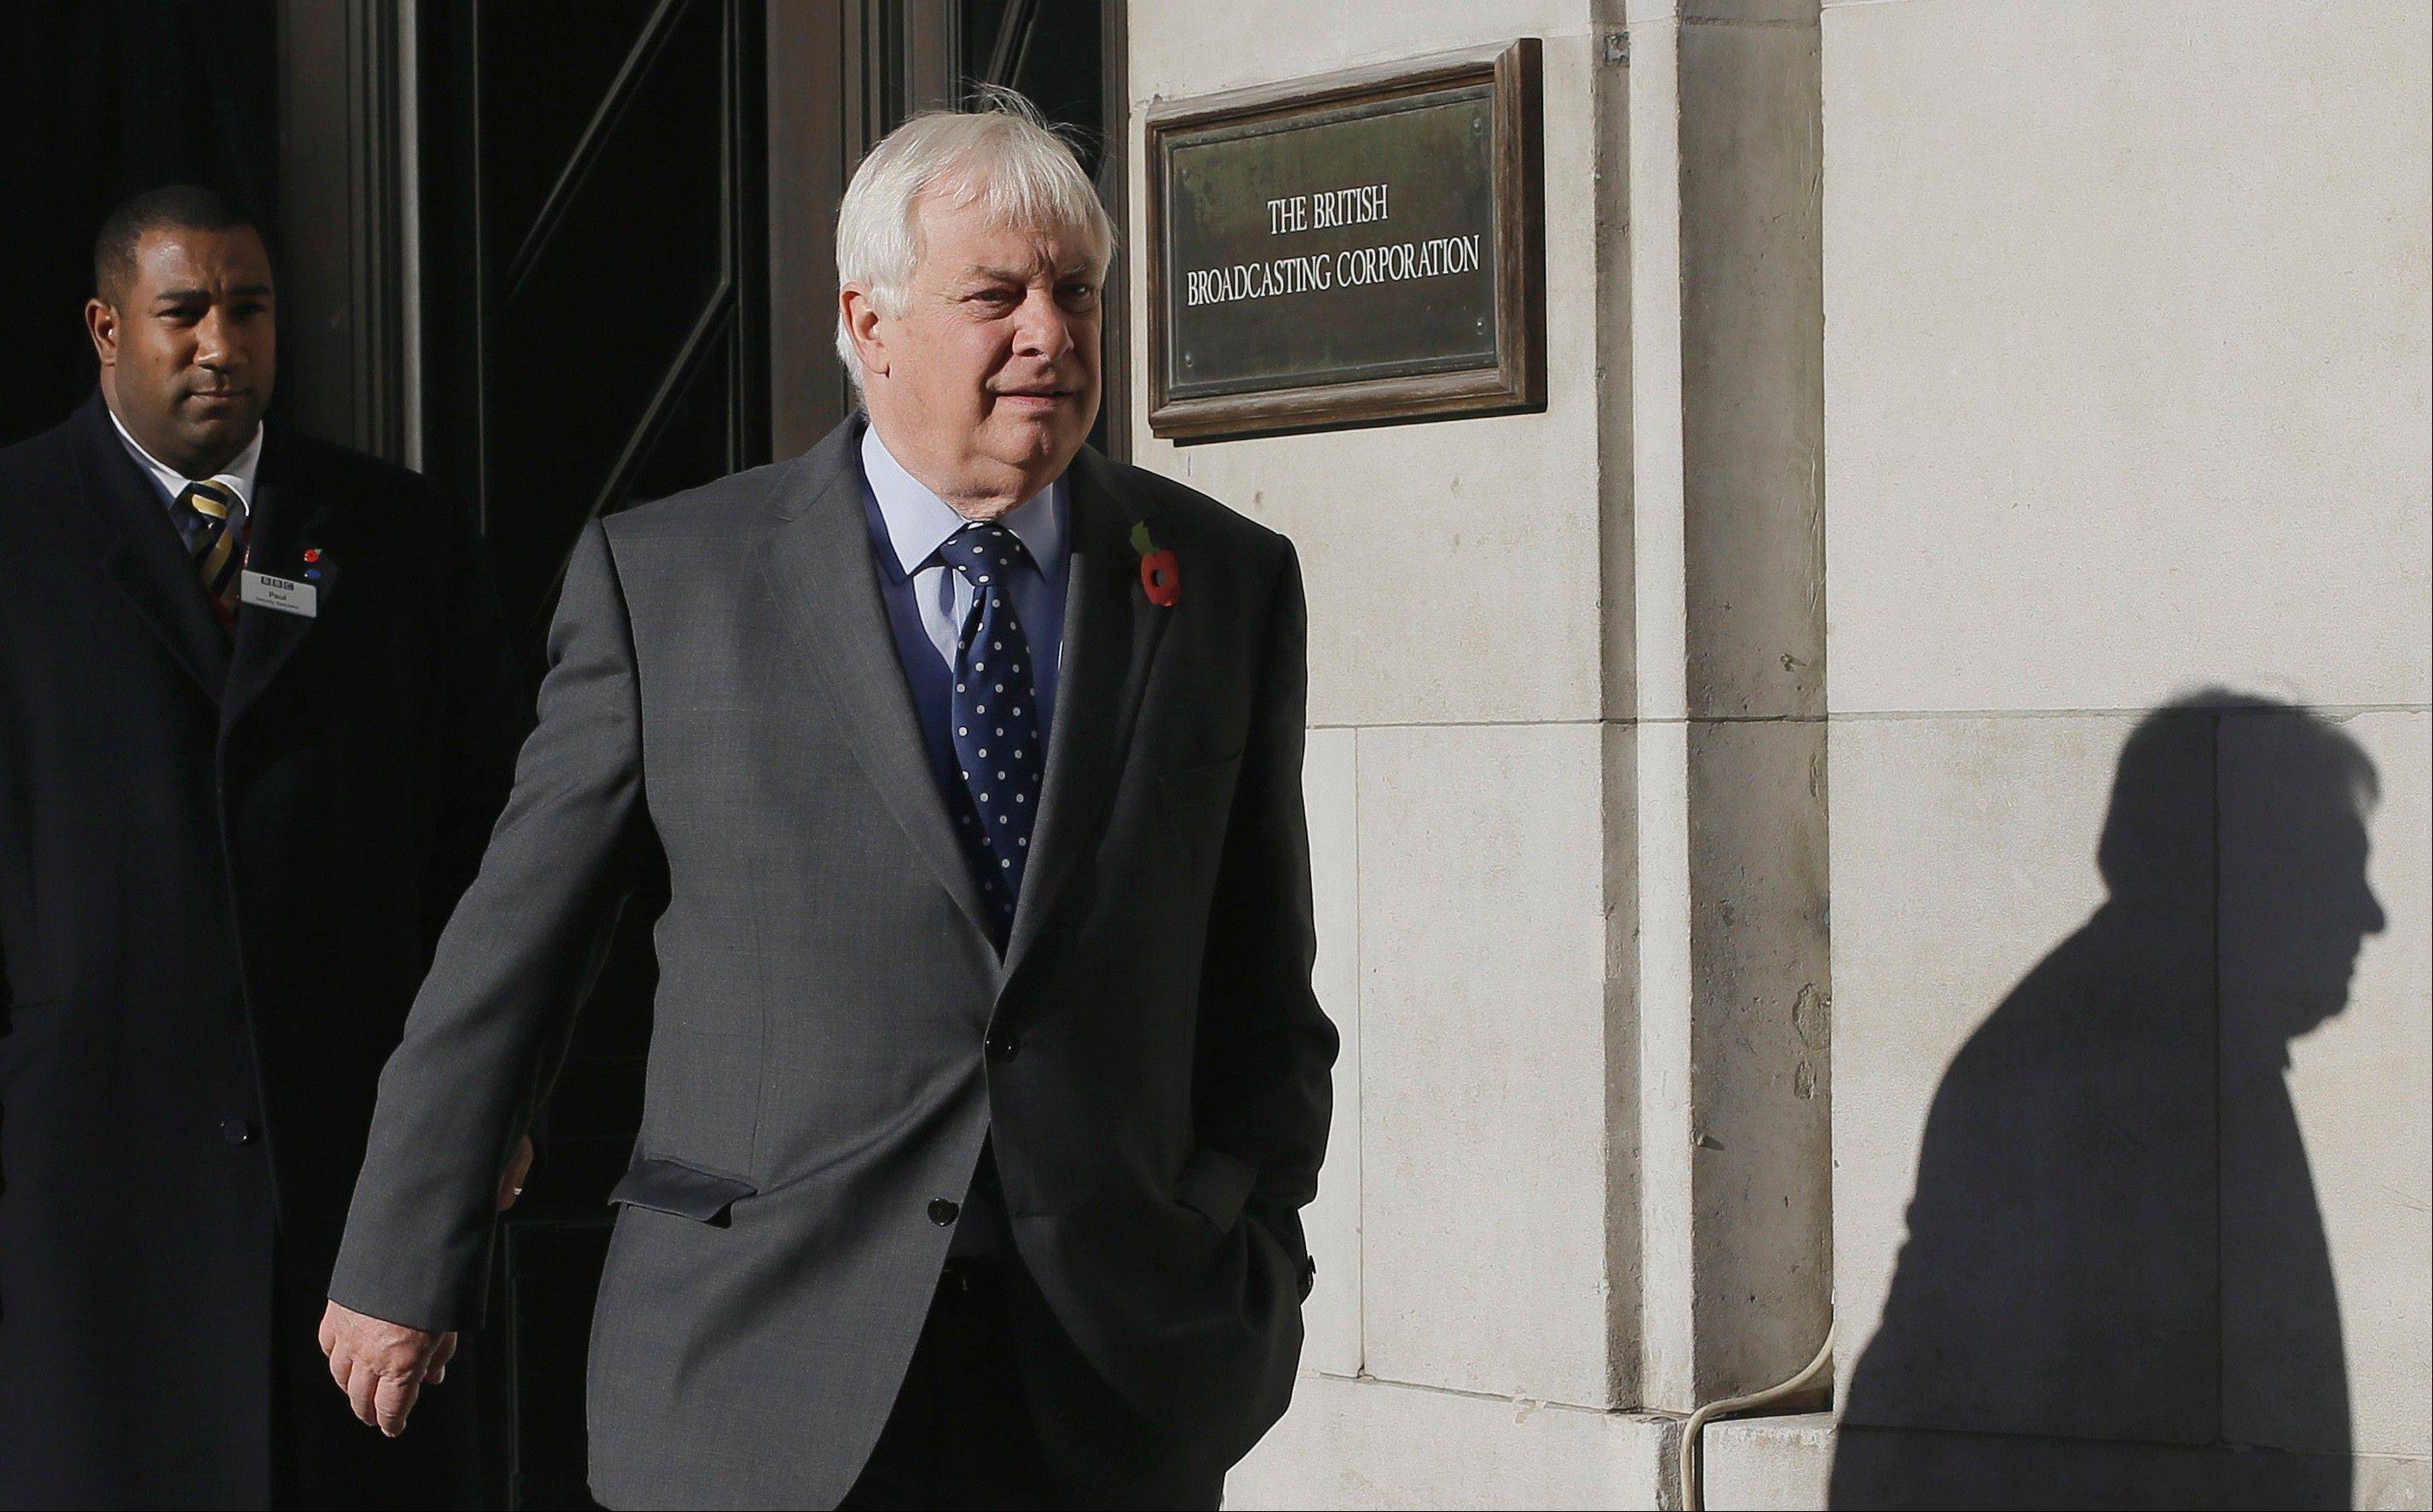 Chris Patten, Chairman of the BBC Trust walks out of the BBC headquarters to give a media interviews in London, Sunday, Nov. 11, 2012. The head of the BBC's governing body said Sunday the broadcaster needs a radical overhaul following the resignation of its chief executive in wake of a scandal over a botched report on child sex-abuse allegations.